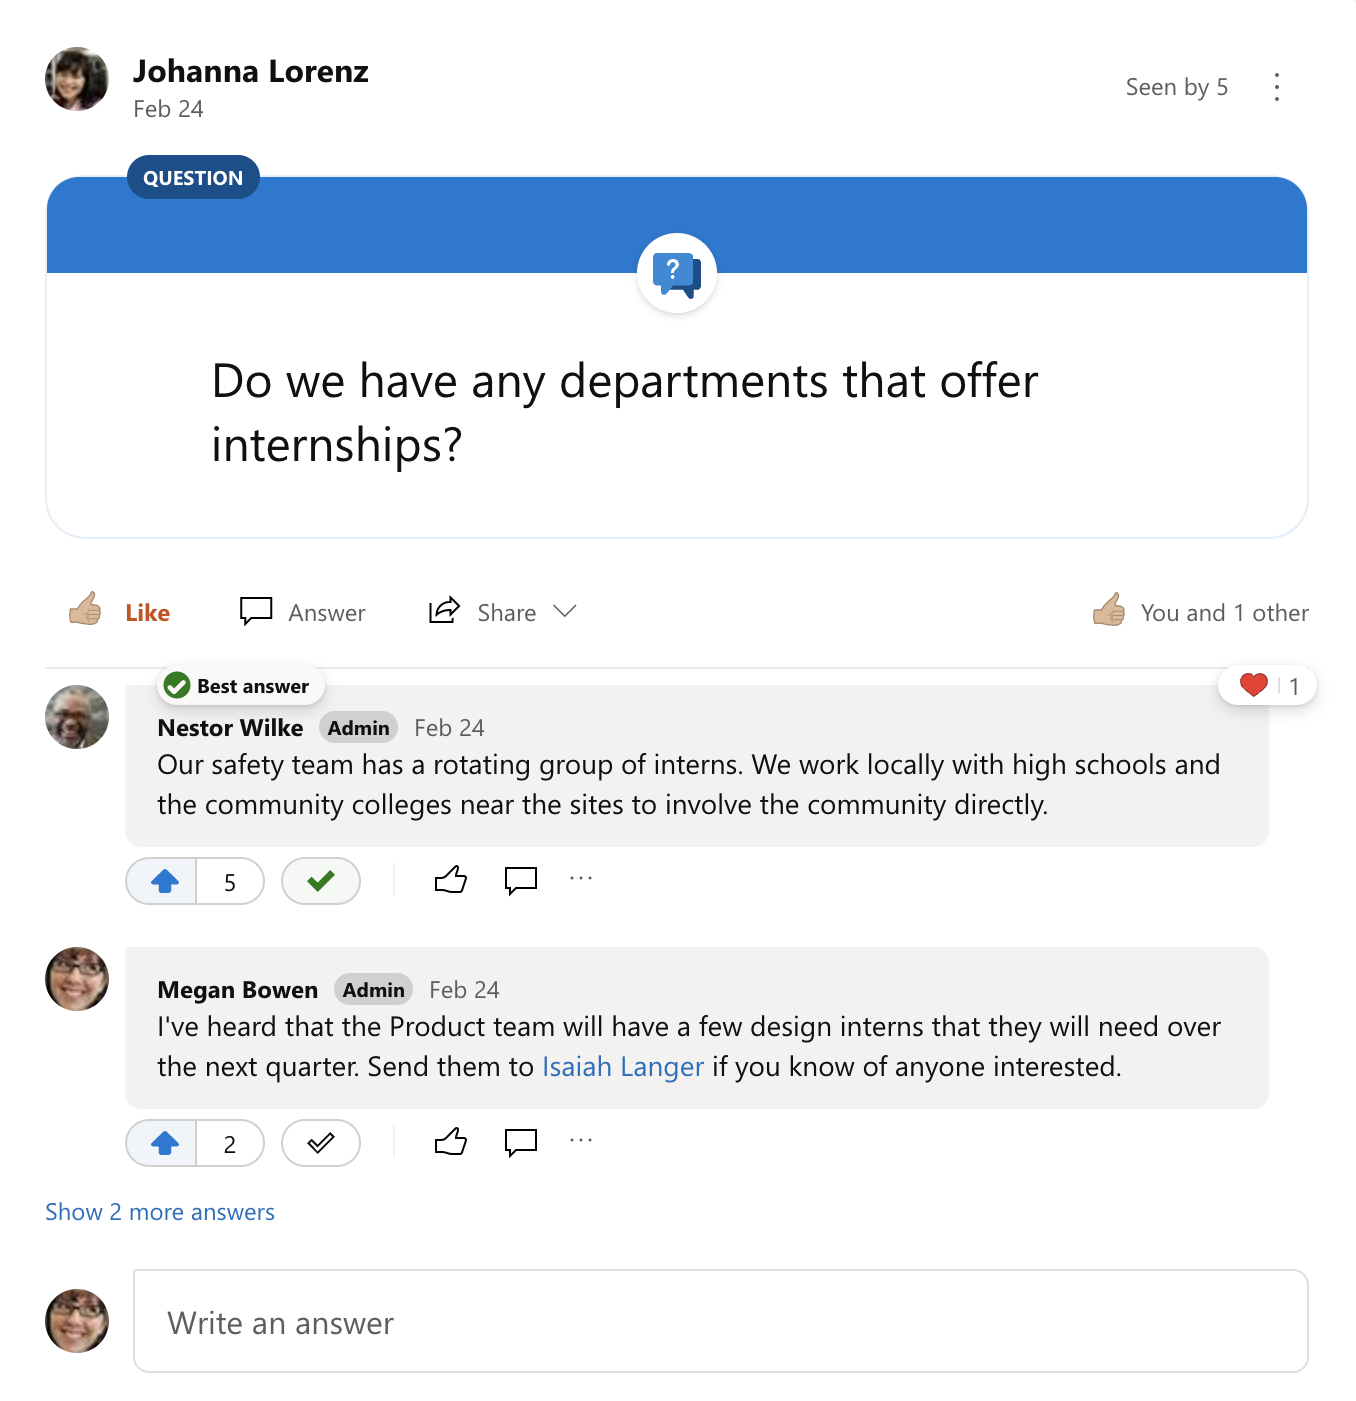 Best answer to a Yammer question